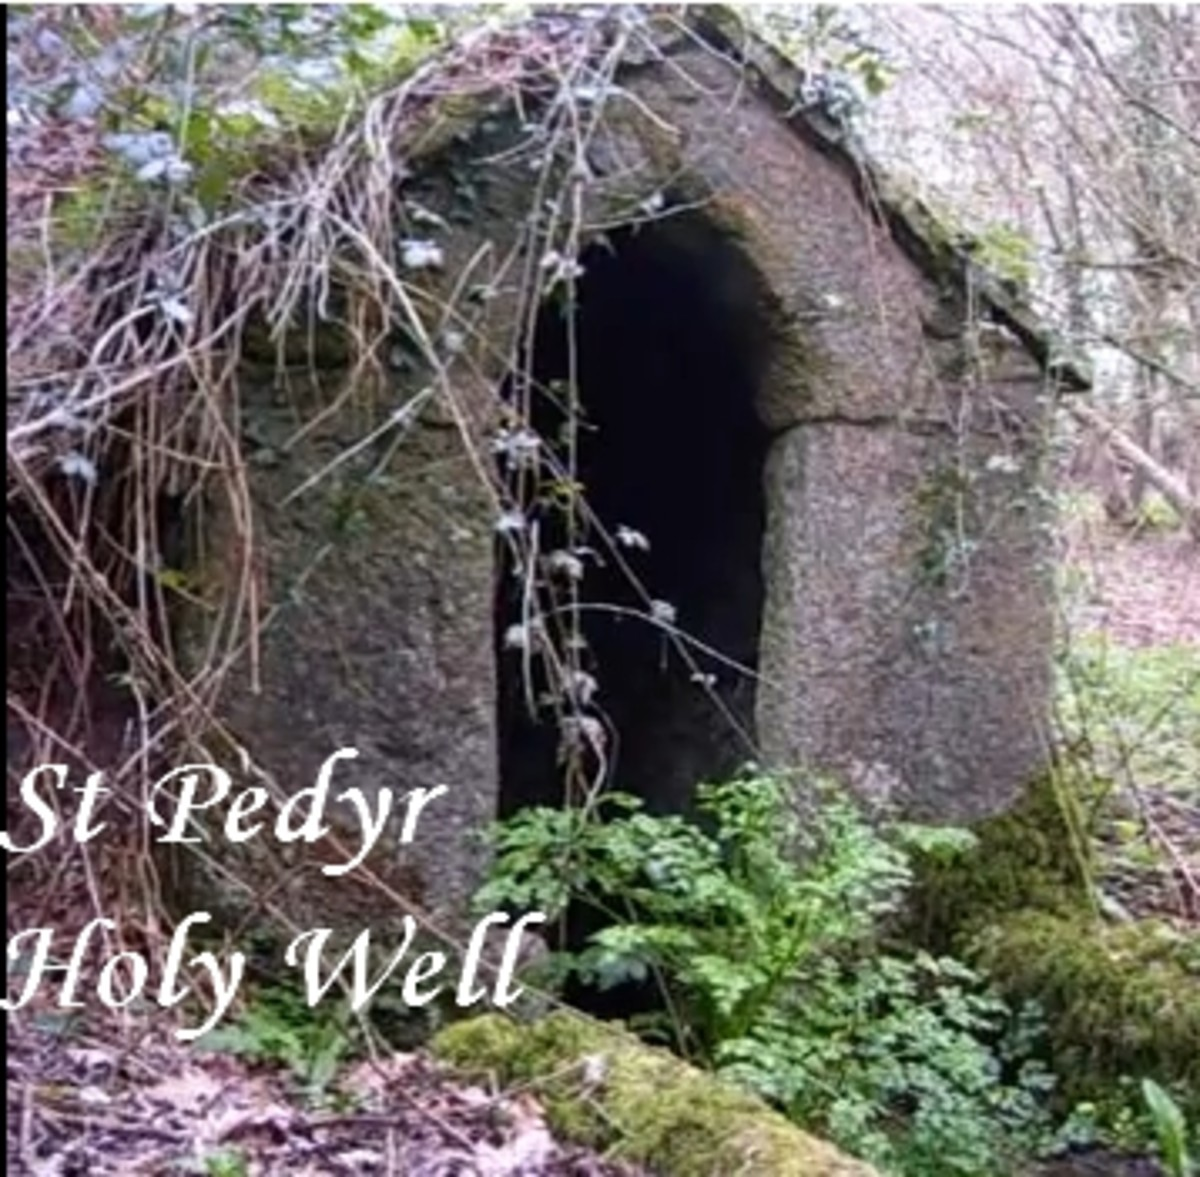 Holy Wells of Newquay, Cornwall: Treloy Holy Well (St Pedyr's Well)